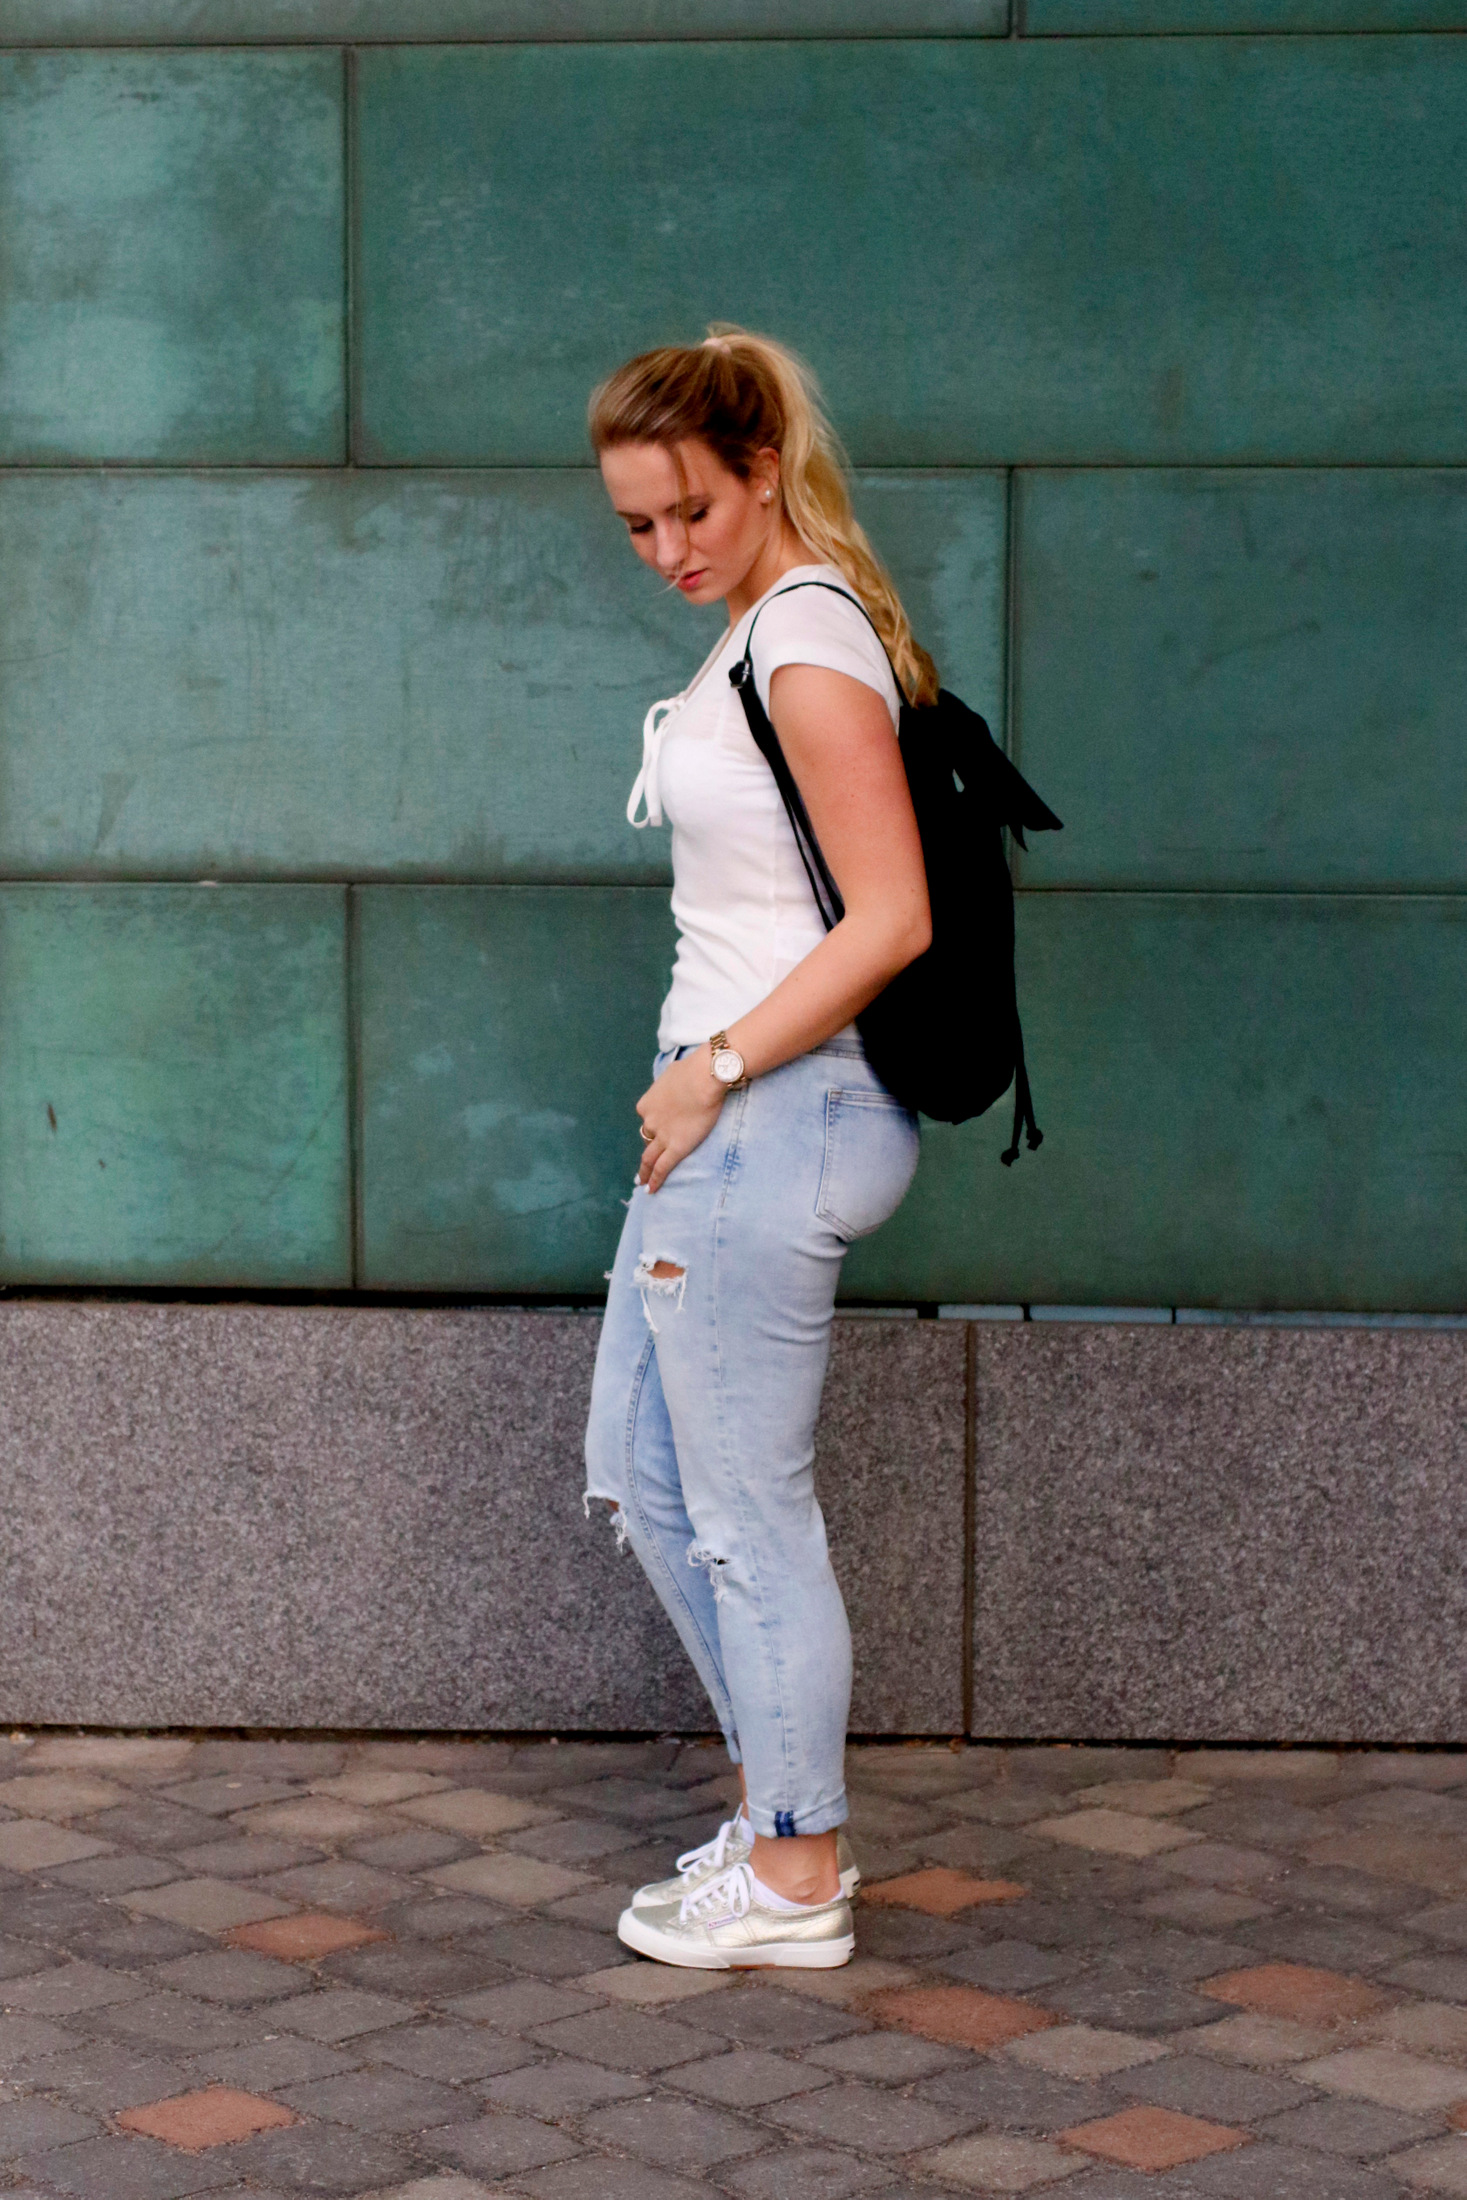 lace-up-shirt-white-girlfriend-jeans-outfit-ootd-blogger-mrsbrightside (3)